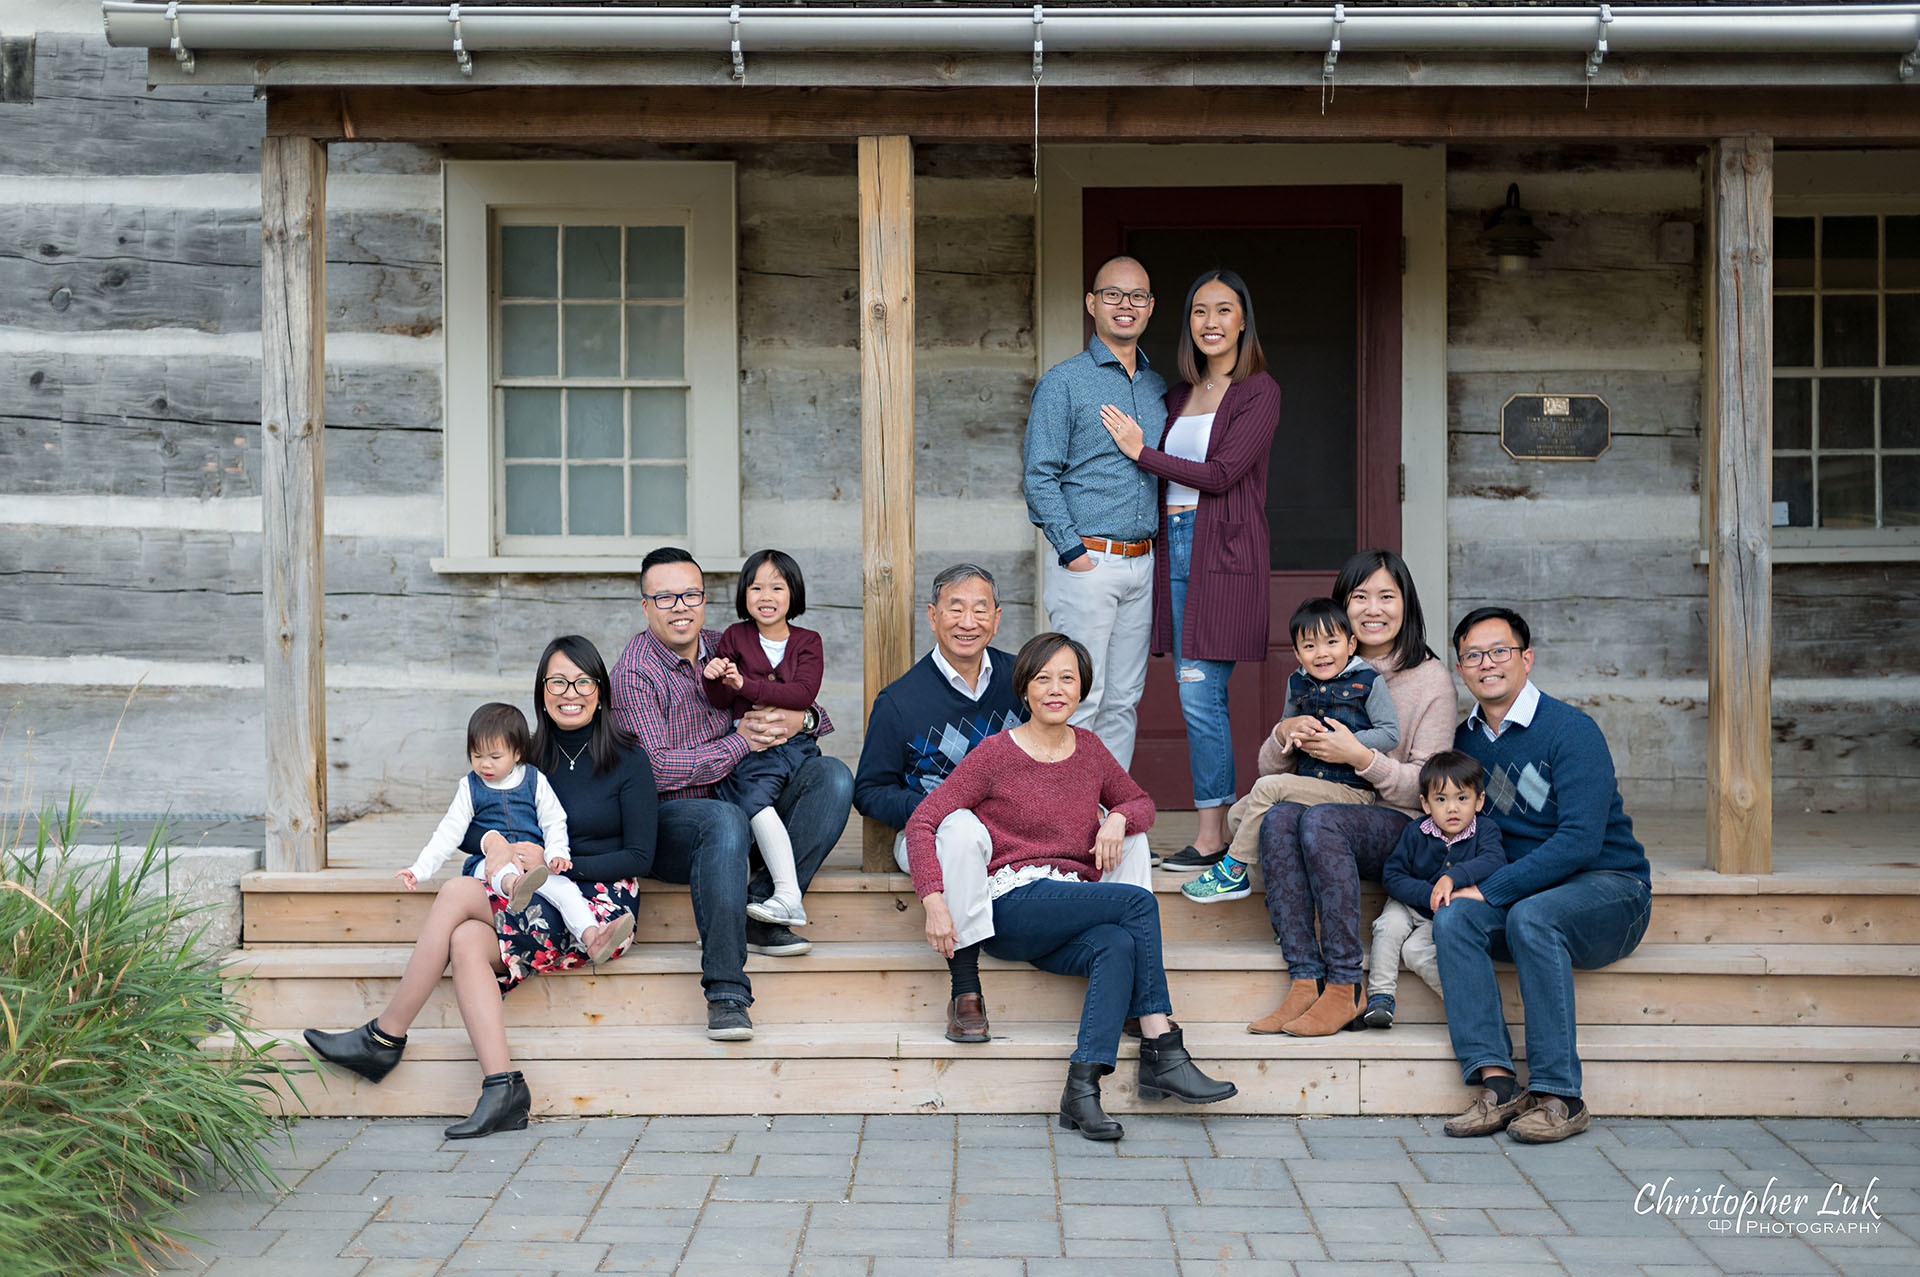 Toronto Markham Grandparents, Children, and Grandchildren Multi-Generational Family